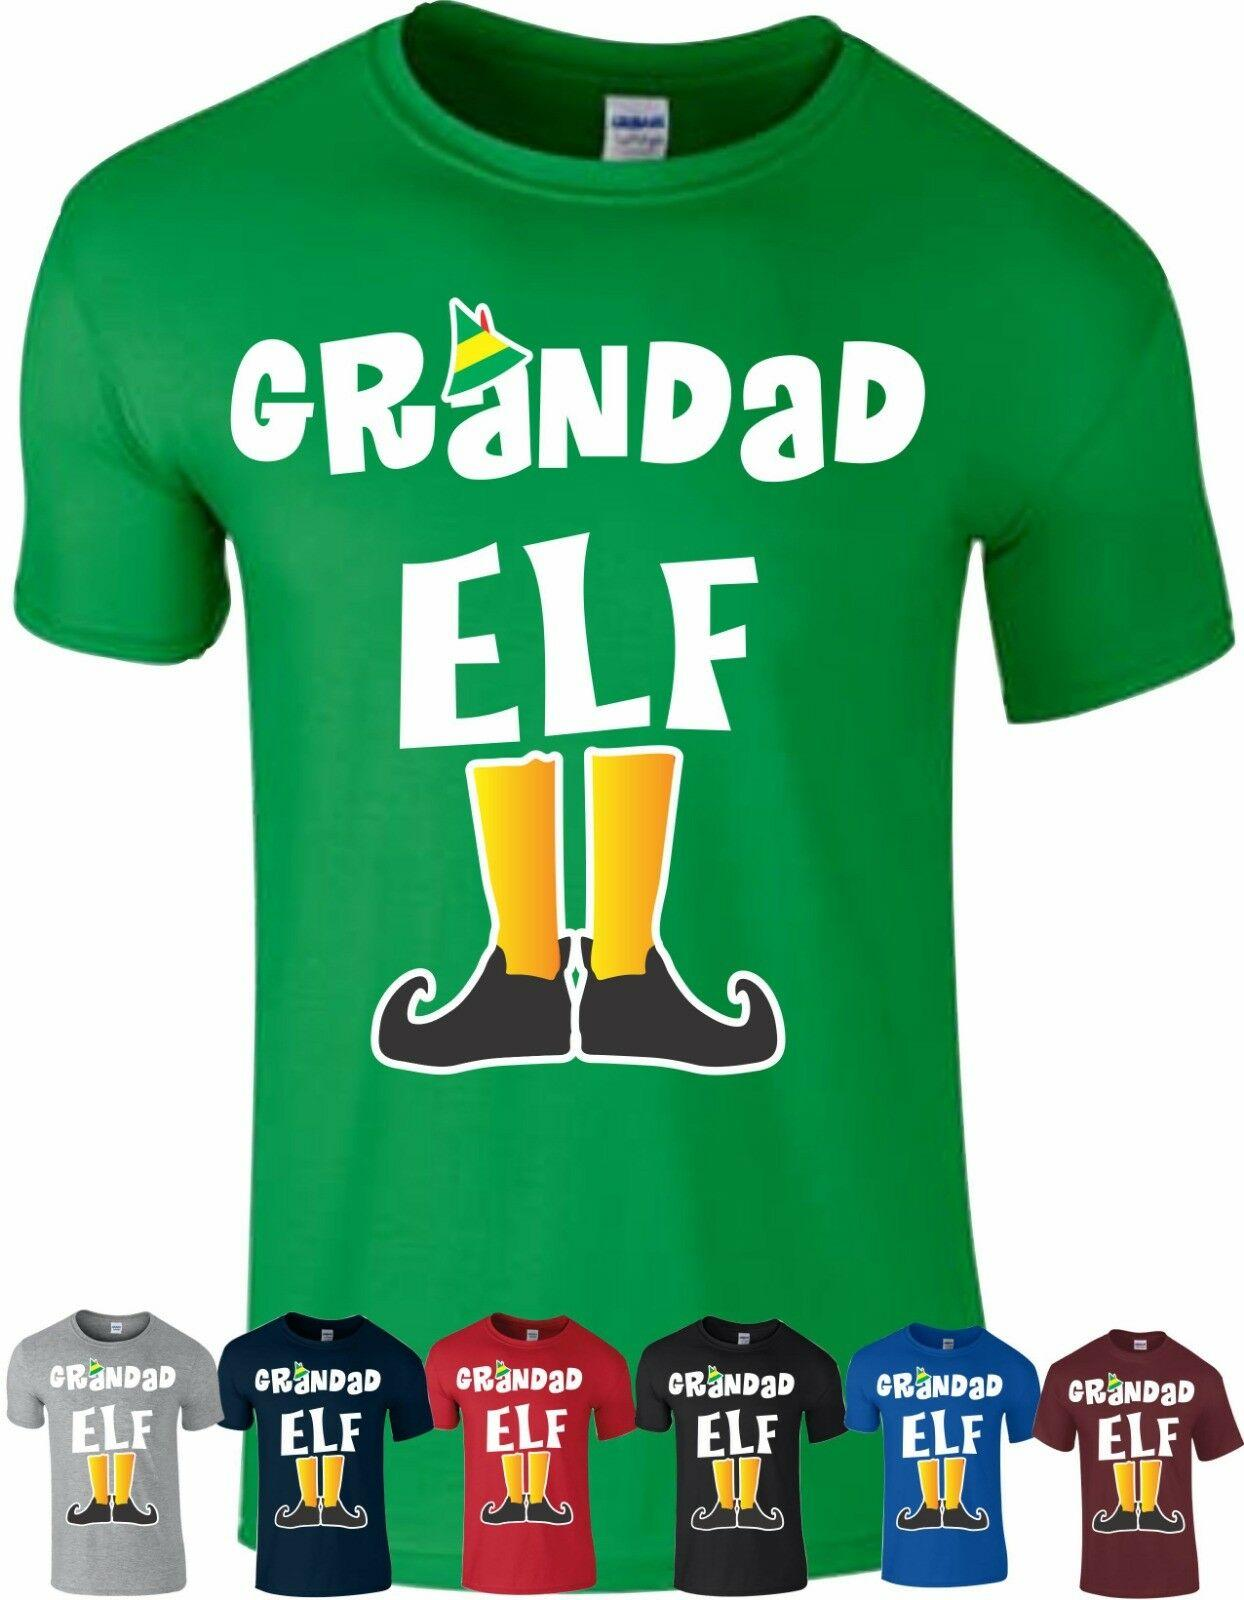 6dbb72ca9 Grandad Elf T Shirt Family Pyjama PJ'S Idea Dad Funny Christmas Xmas Gift  Top Men Women Unisex Fashion Tshirt Black T Shirts Funny Great T Shirts  From ...